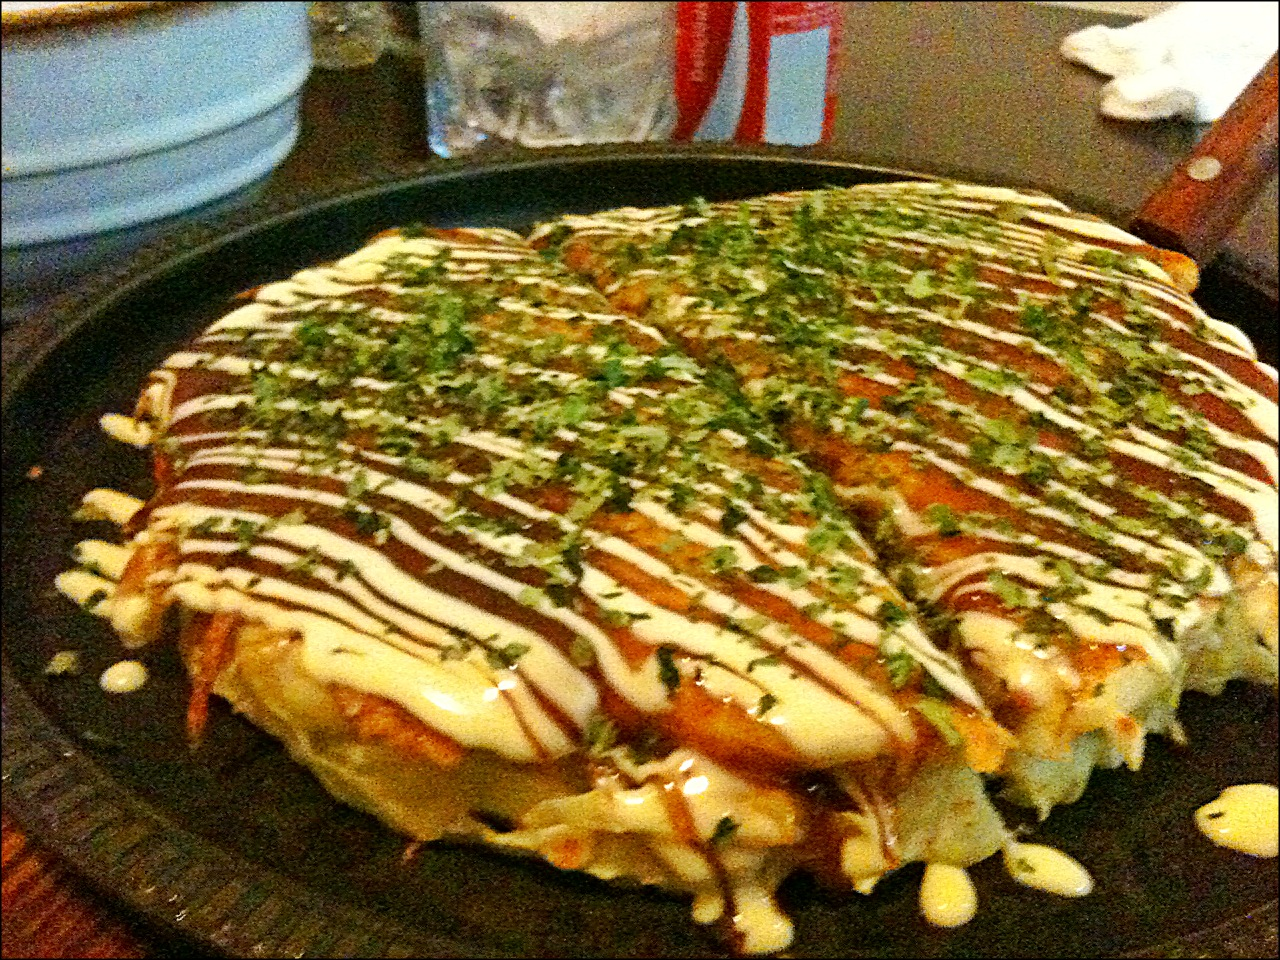 ramen recipe philippines okonomiyaki Kagura the in June It (taken Here's we from 2011). got